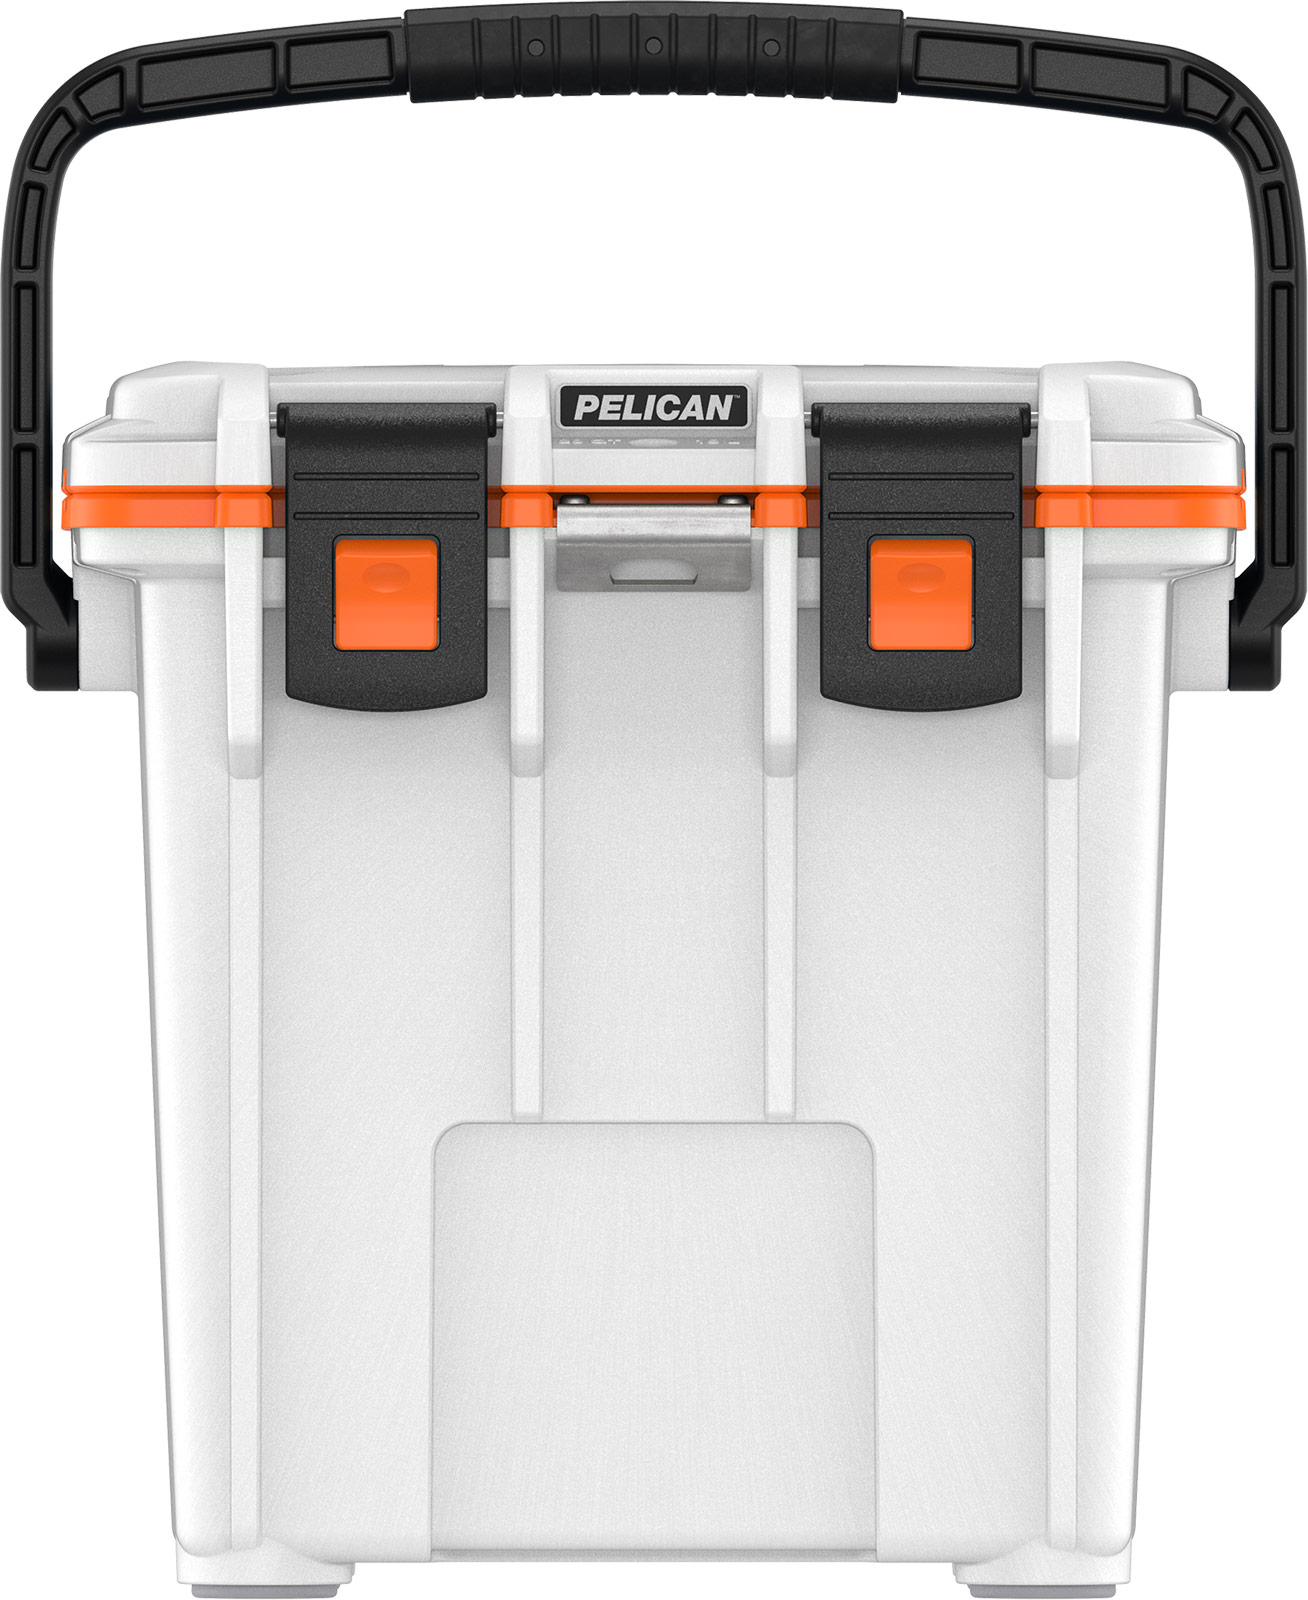 pelican 20qt cocktail white hard cooler